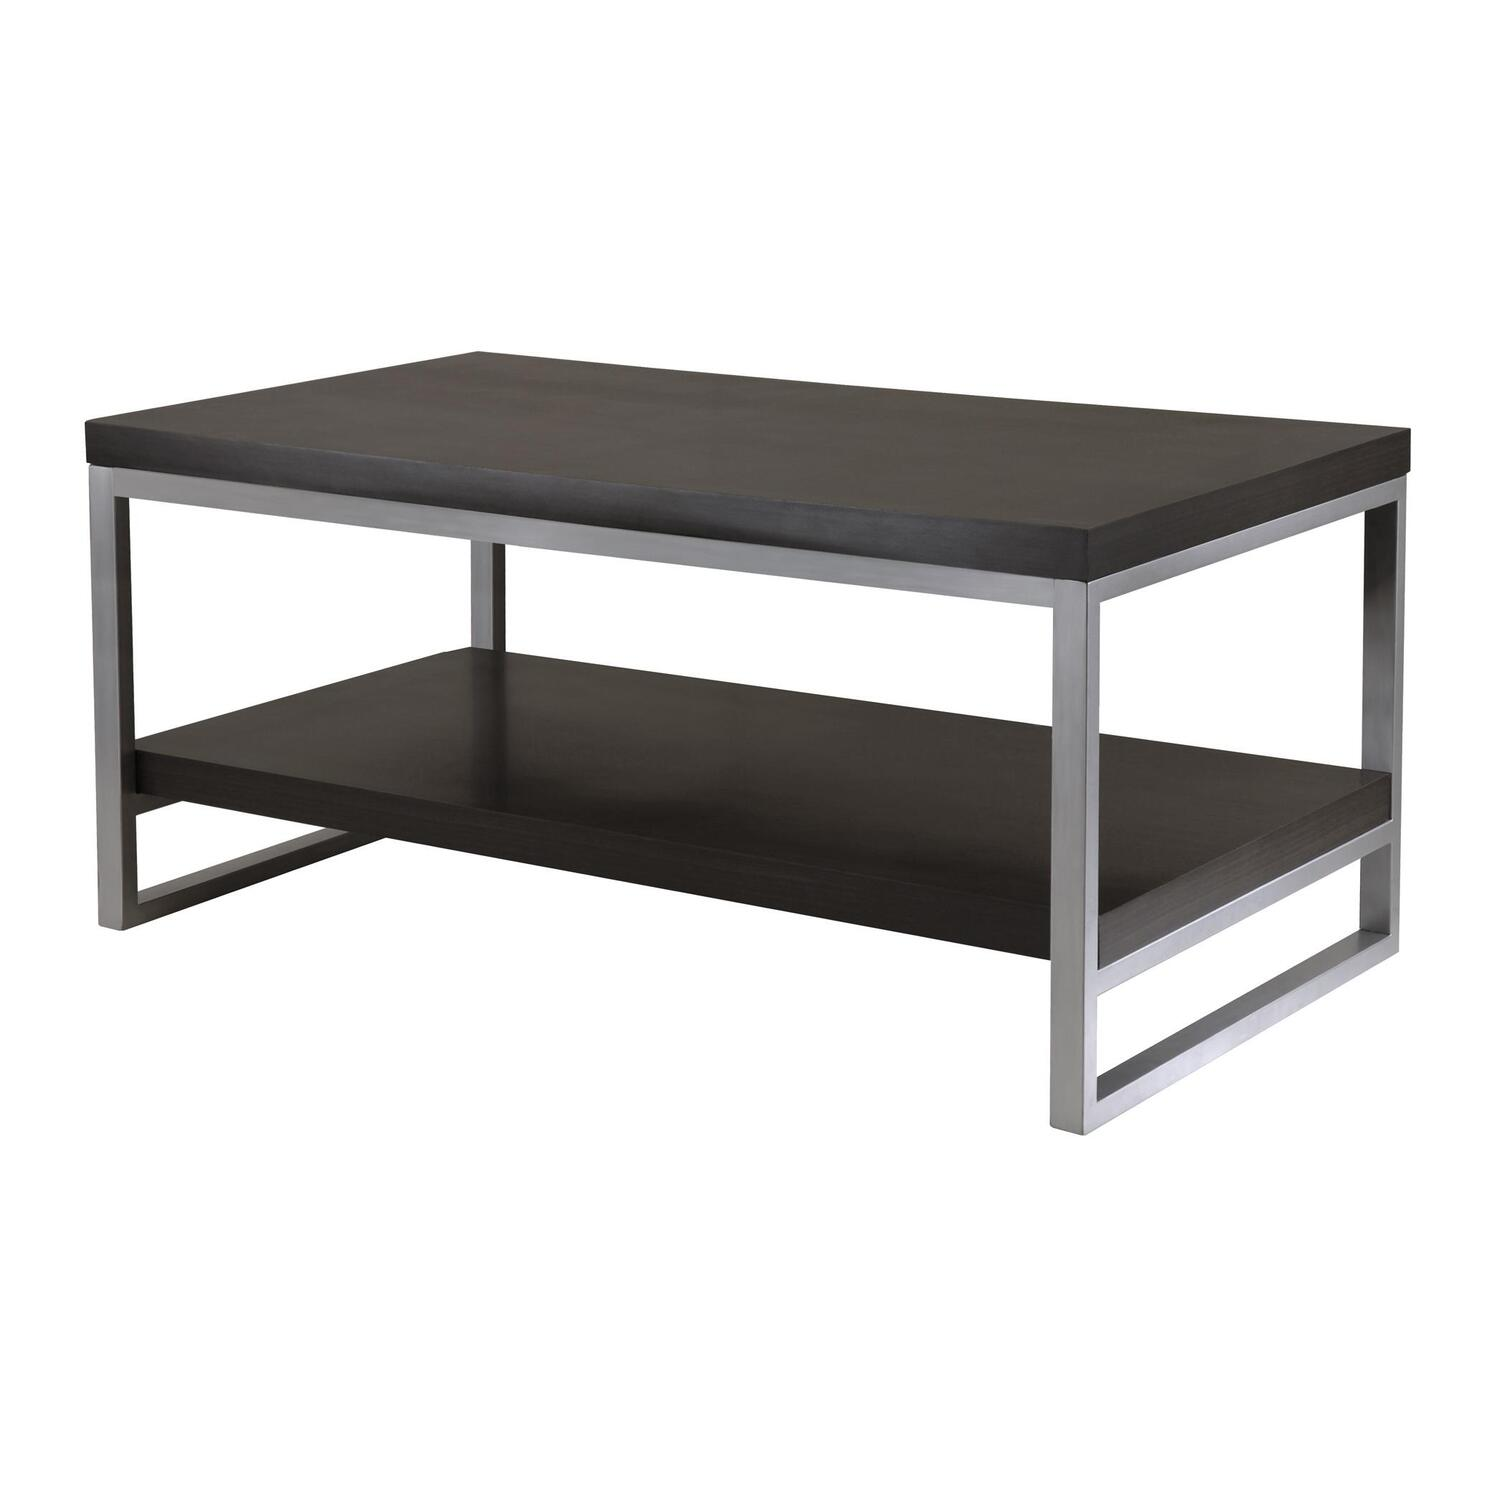 Jared Coffee Table Enamel Steel Tube Ojcommerce